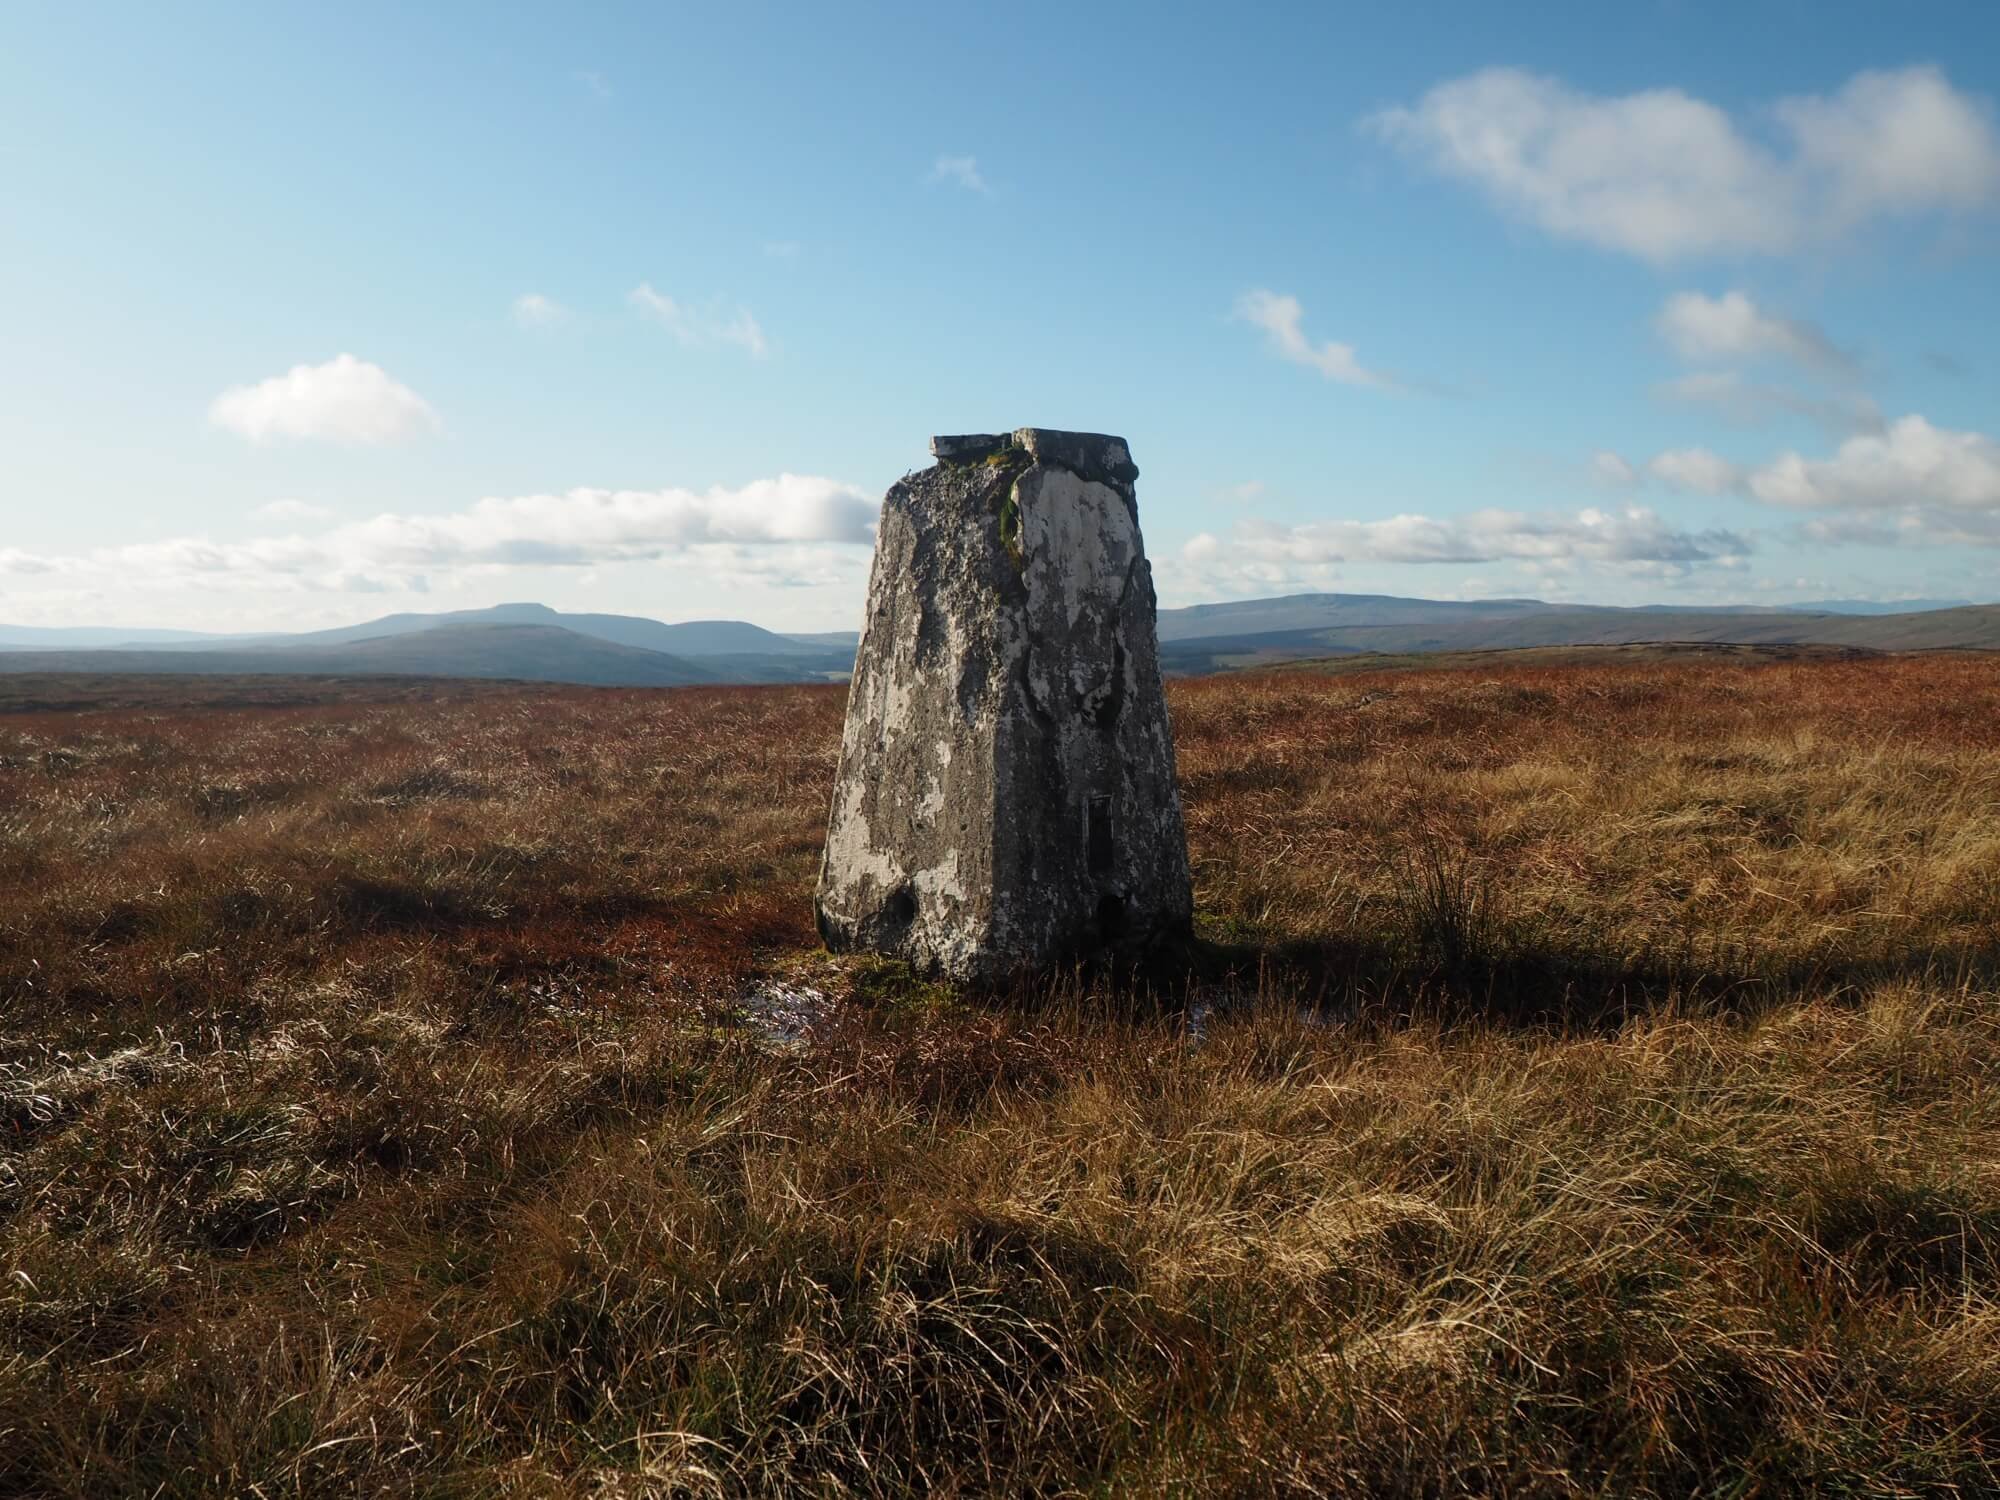 The Yockenthwaite Moor trig point